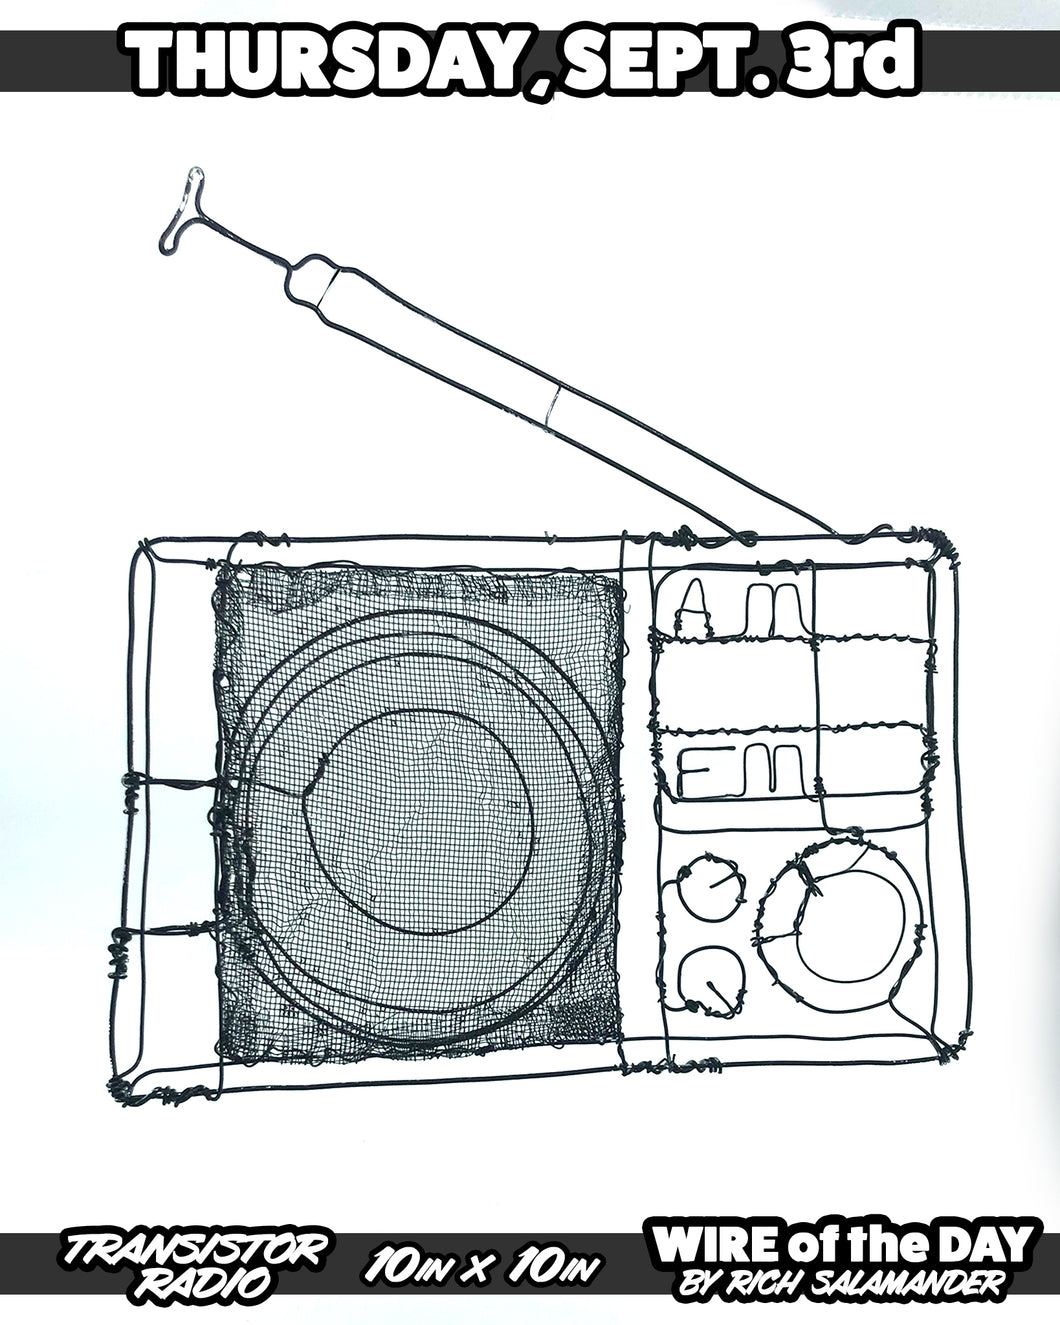 WIRE of the DAY TRANSISTOR RADIO